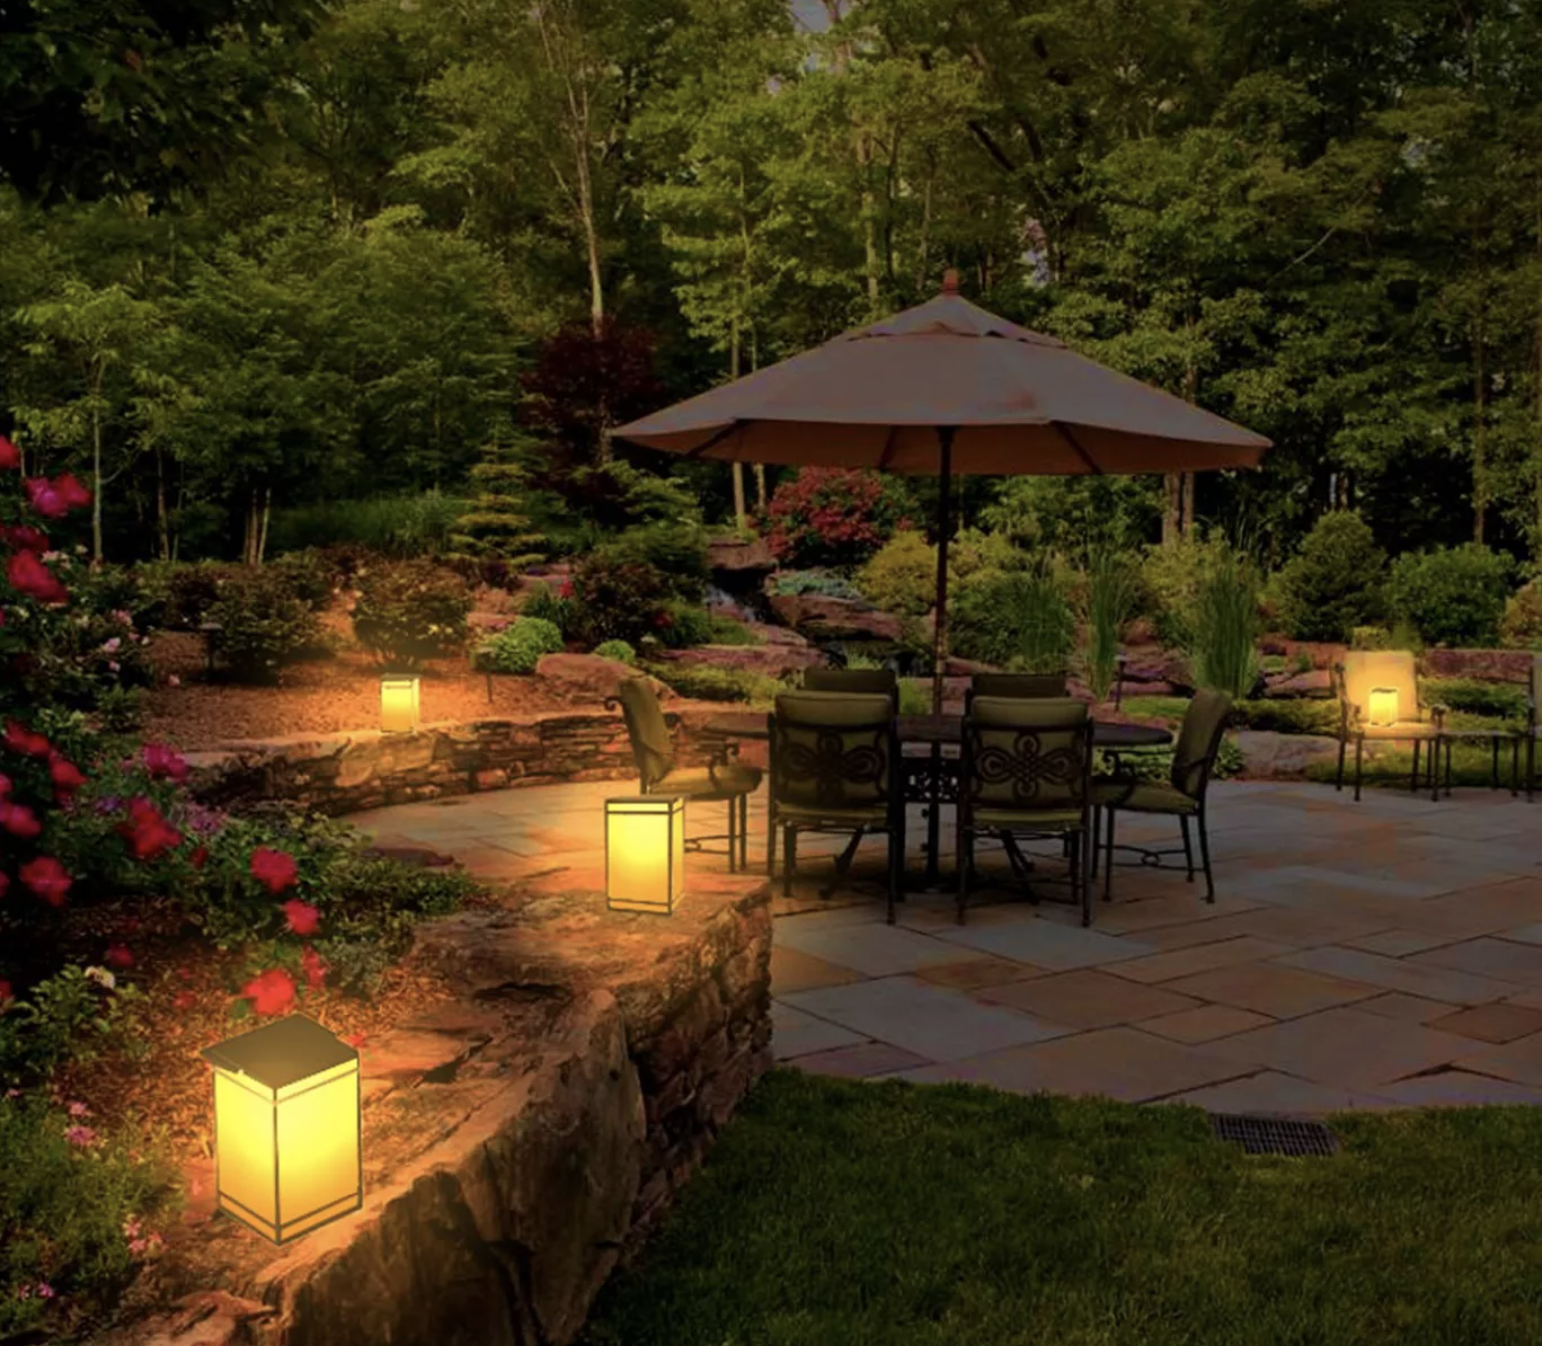 Portable rectangular lanterns with handles scattered around a patio